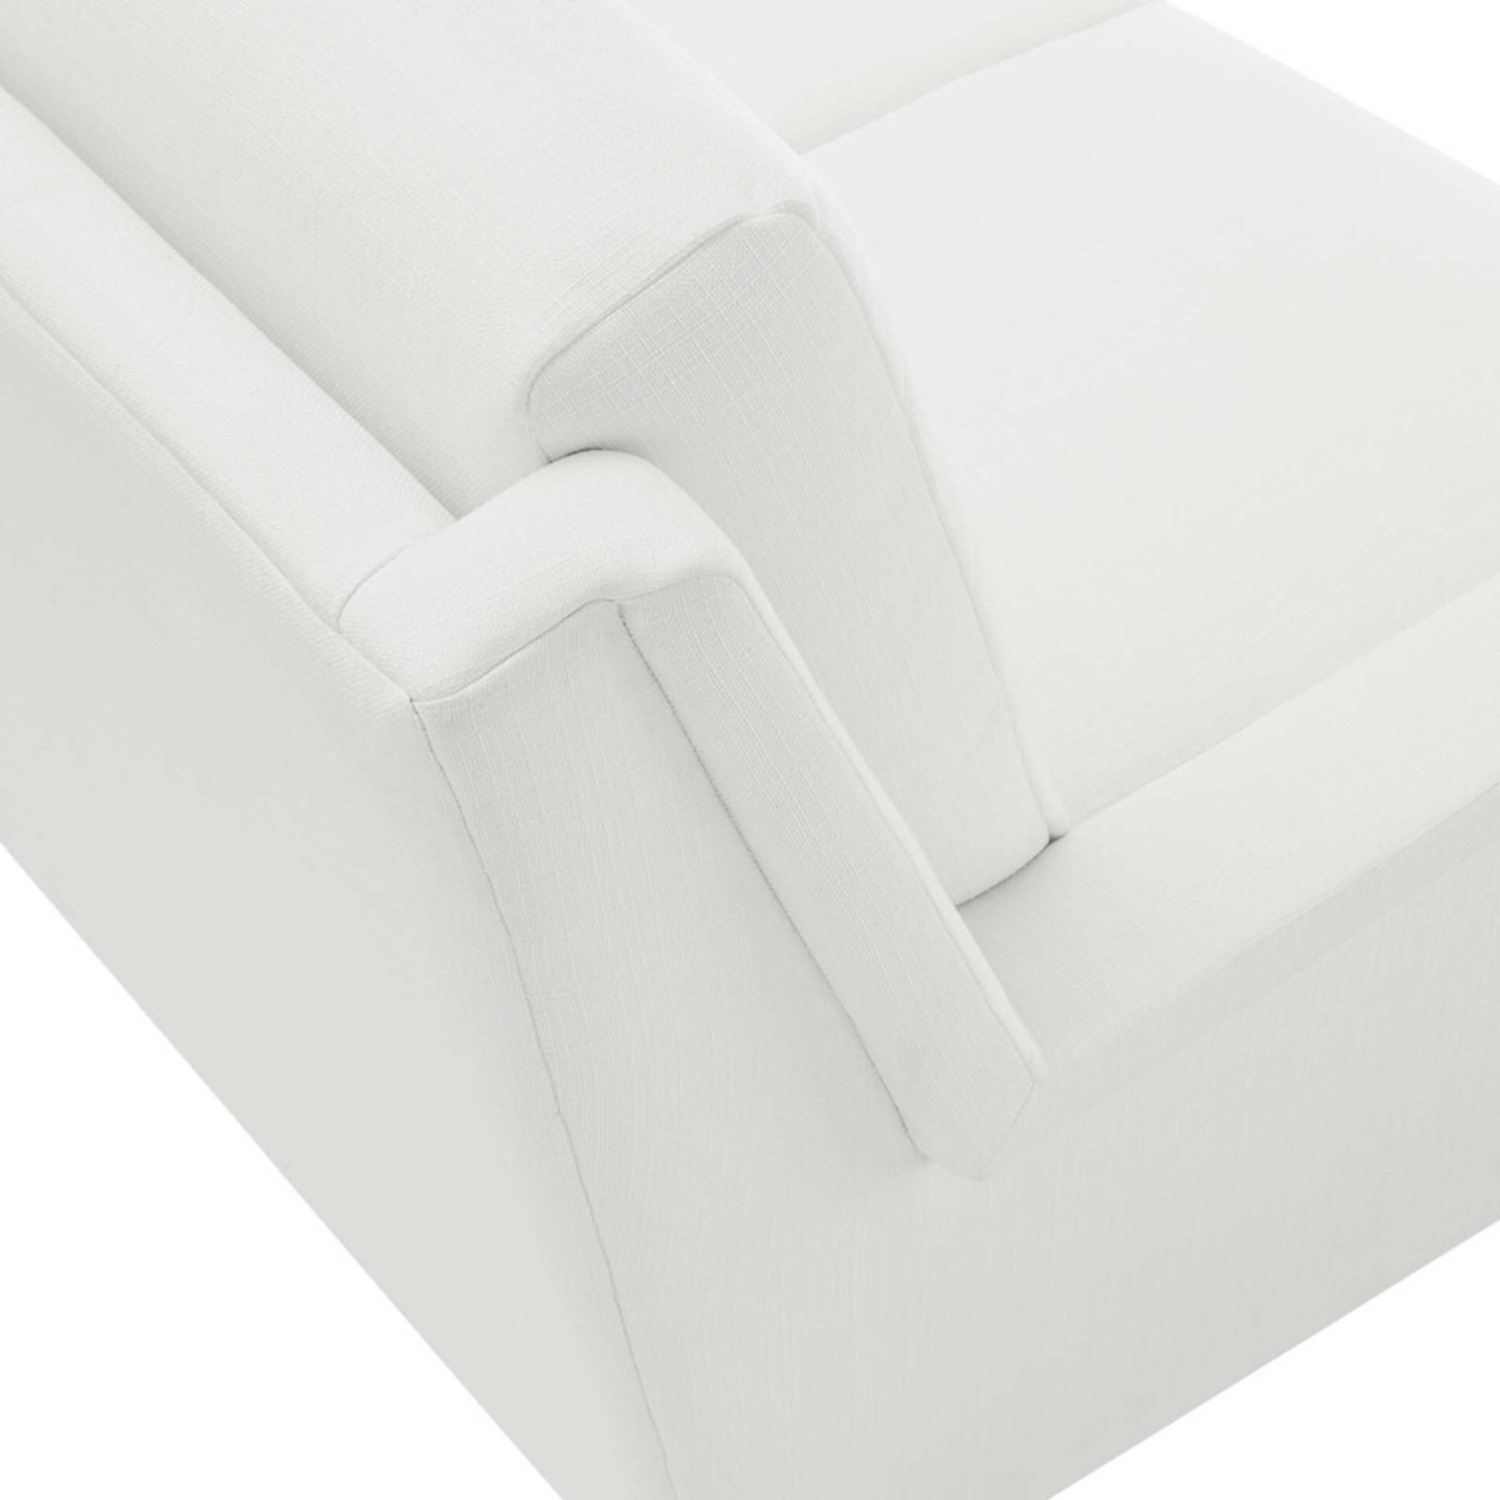 Retro Style Sofa In White Polyester Fabric - image-4